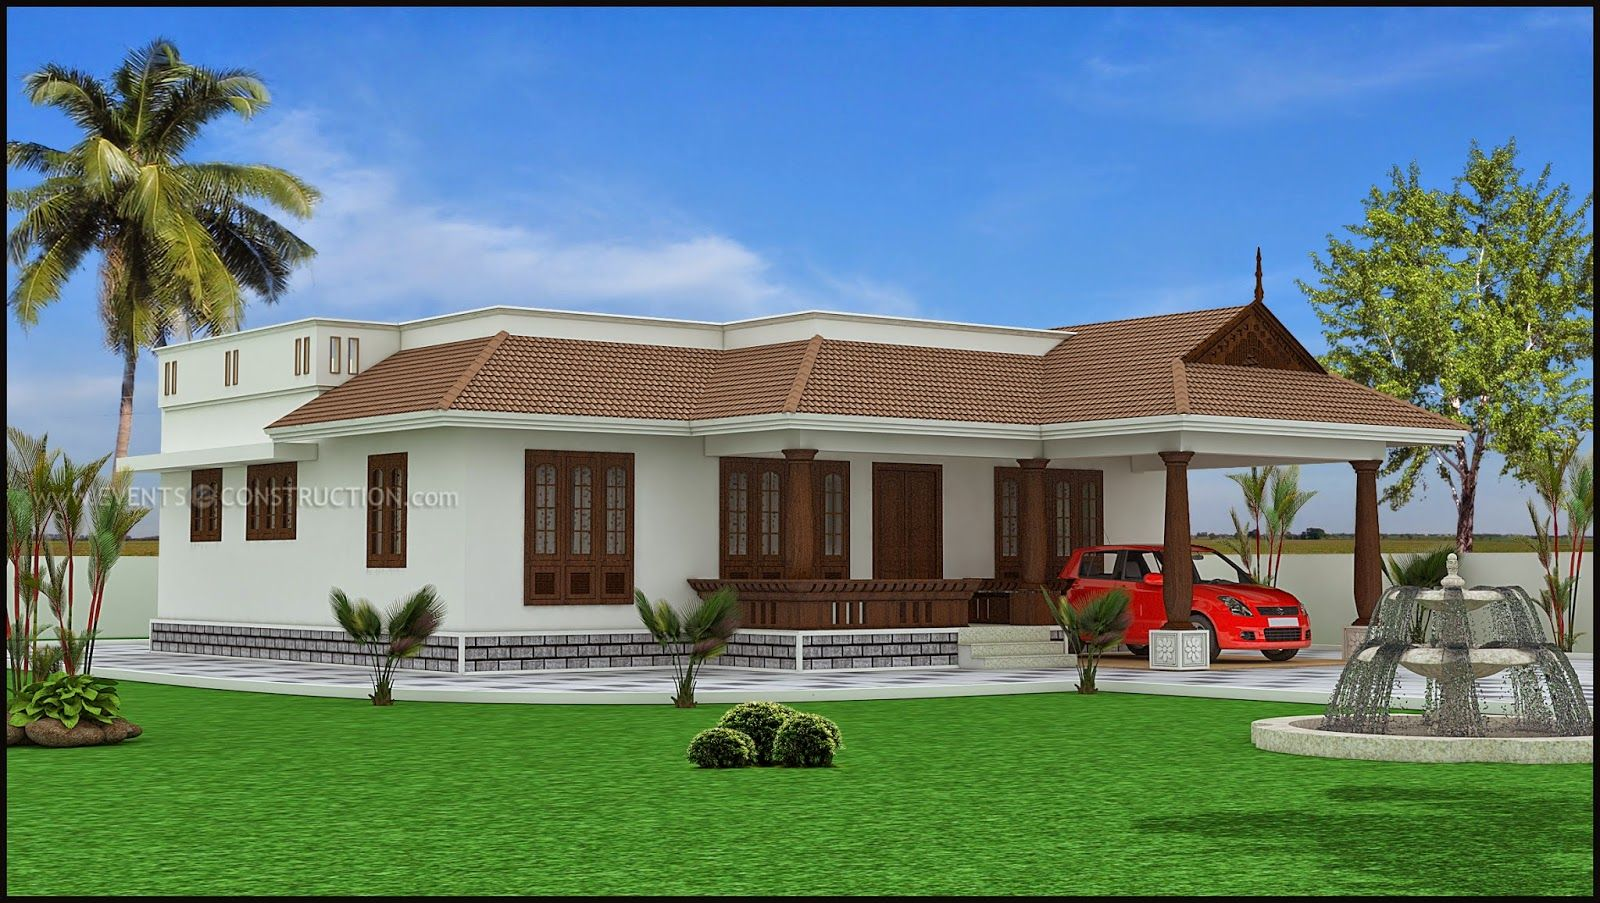 Home Design Kerala Beautiful Houses Inside Kerala Single Floor House Designs Best 1 Story House Designs Kerala House Design House Design House Paint Exterior